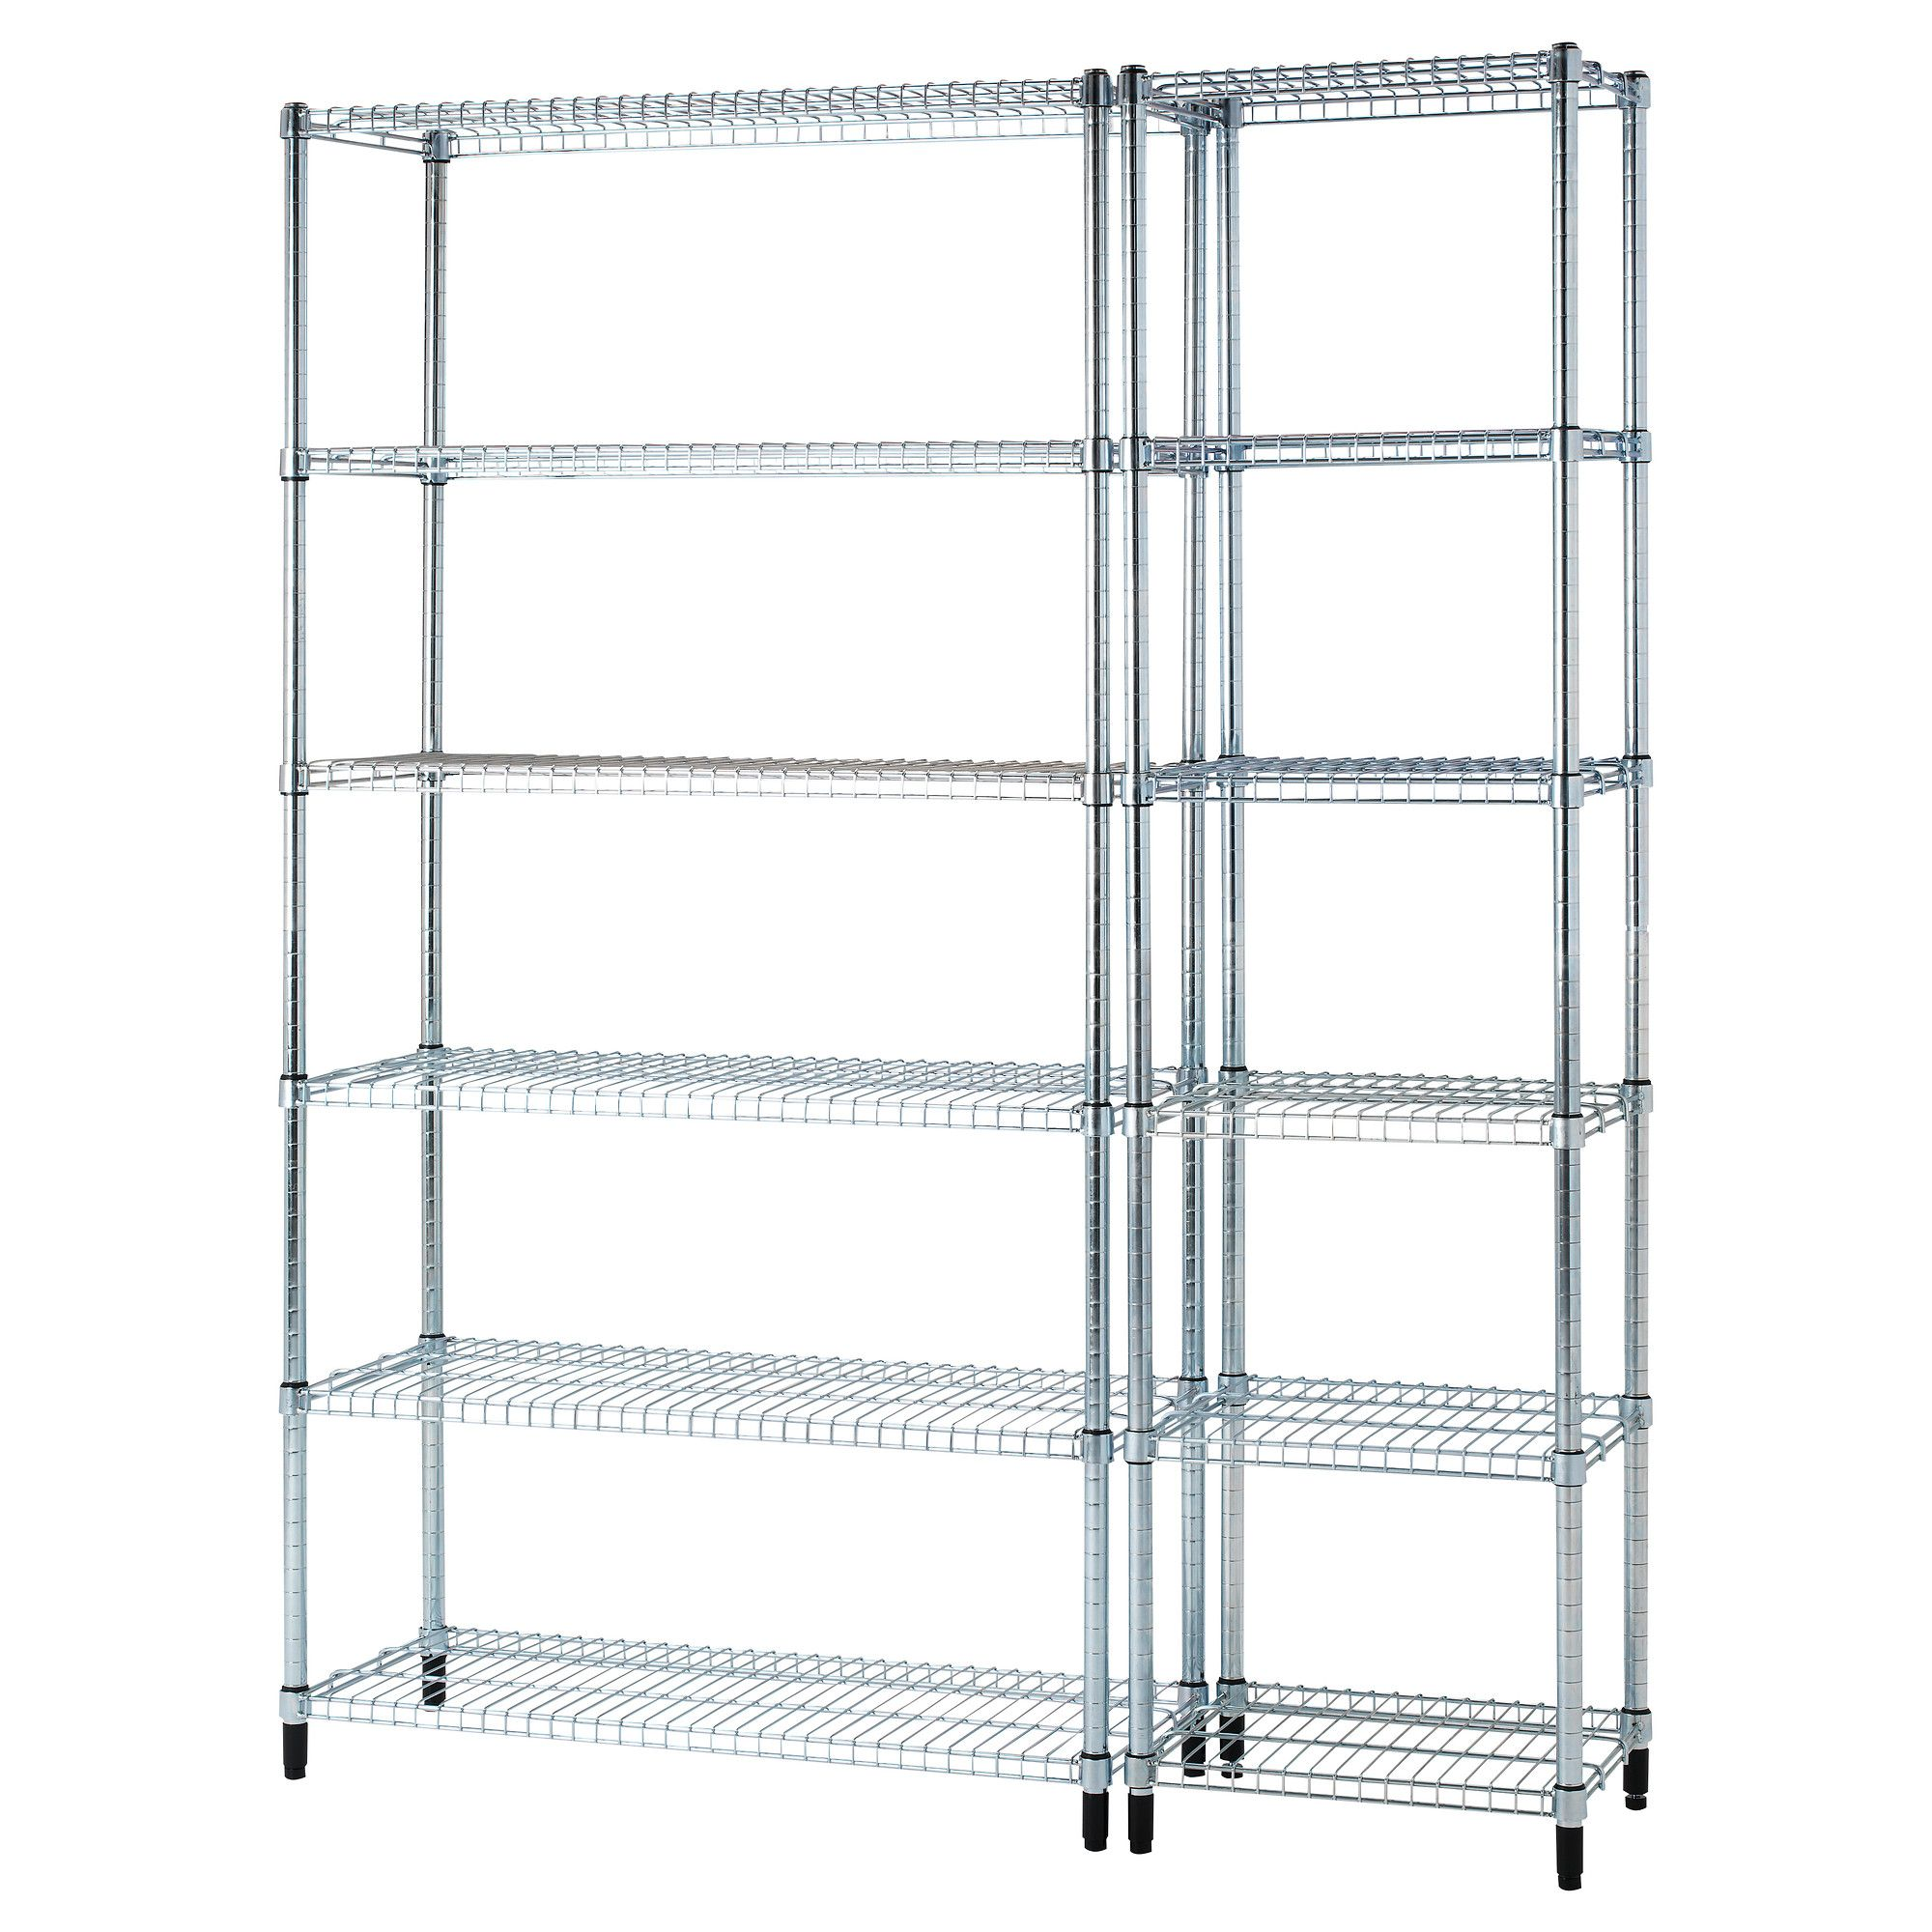 ikea omar 2 shelf sections easy to assemble no tools required also stands steady on an. Black Bedroom Furniture Sets. Home Design Ideas